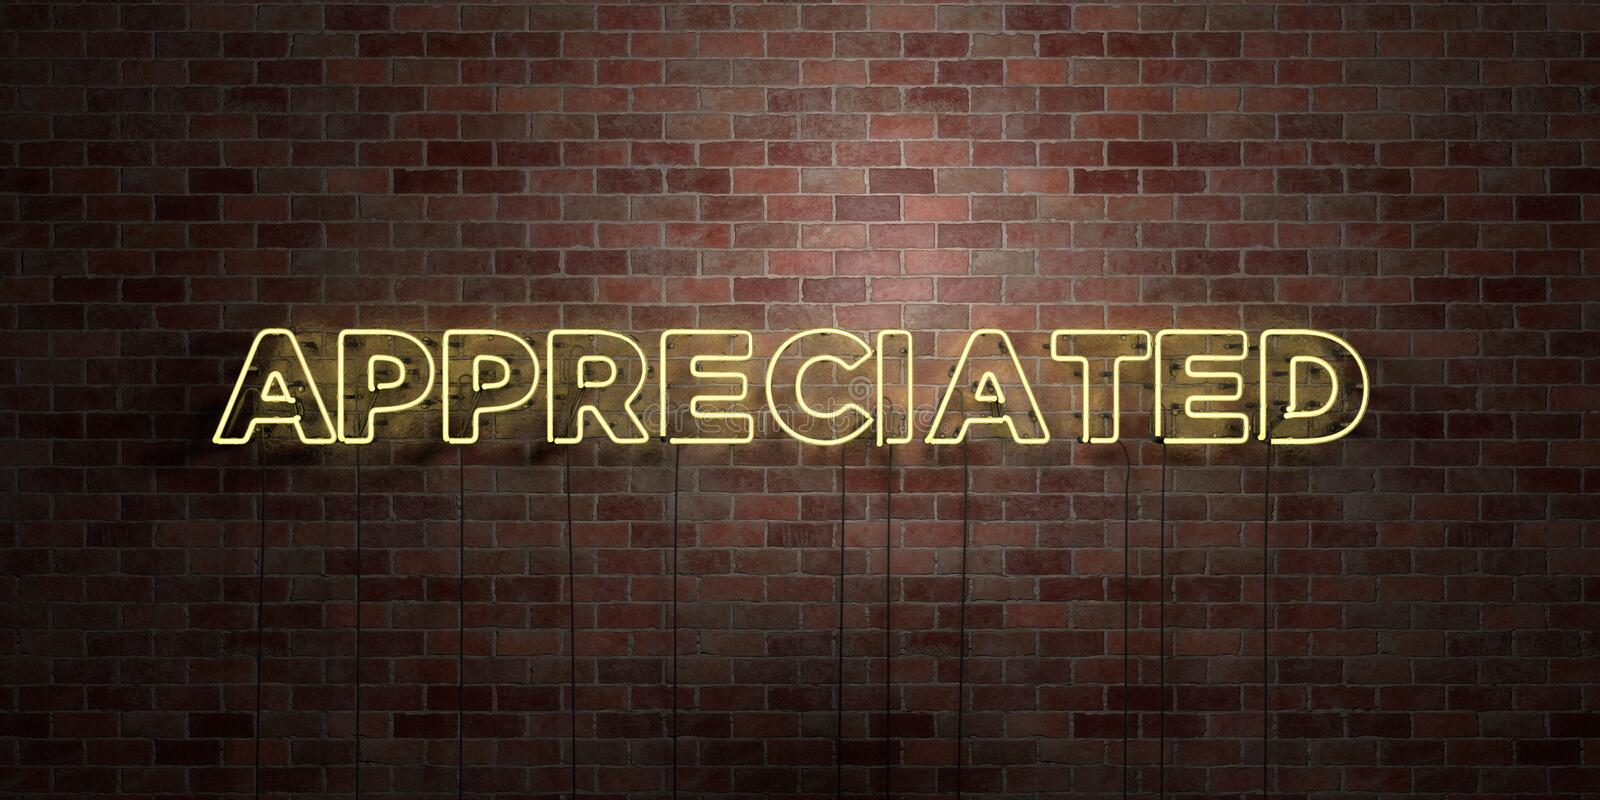 APPRECIATED - fluorescent Neon tube Sign on brickwork - Front view - 3D rendered royalty free stock picture. Can be used for online banner ads and direct stock illustration